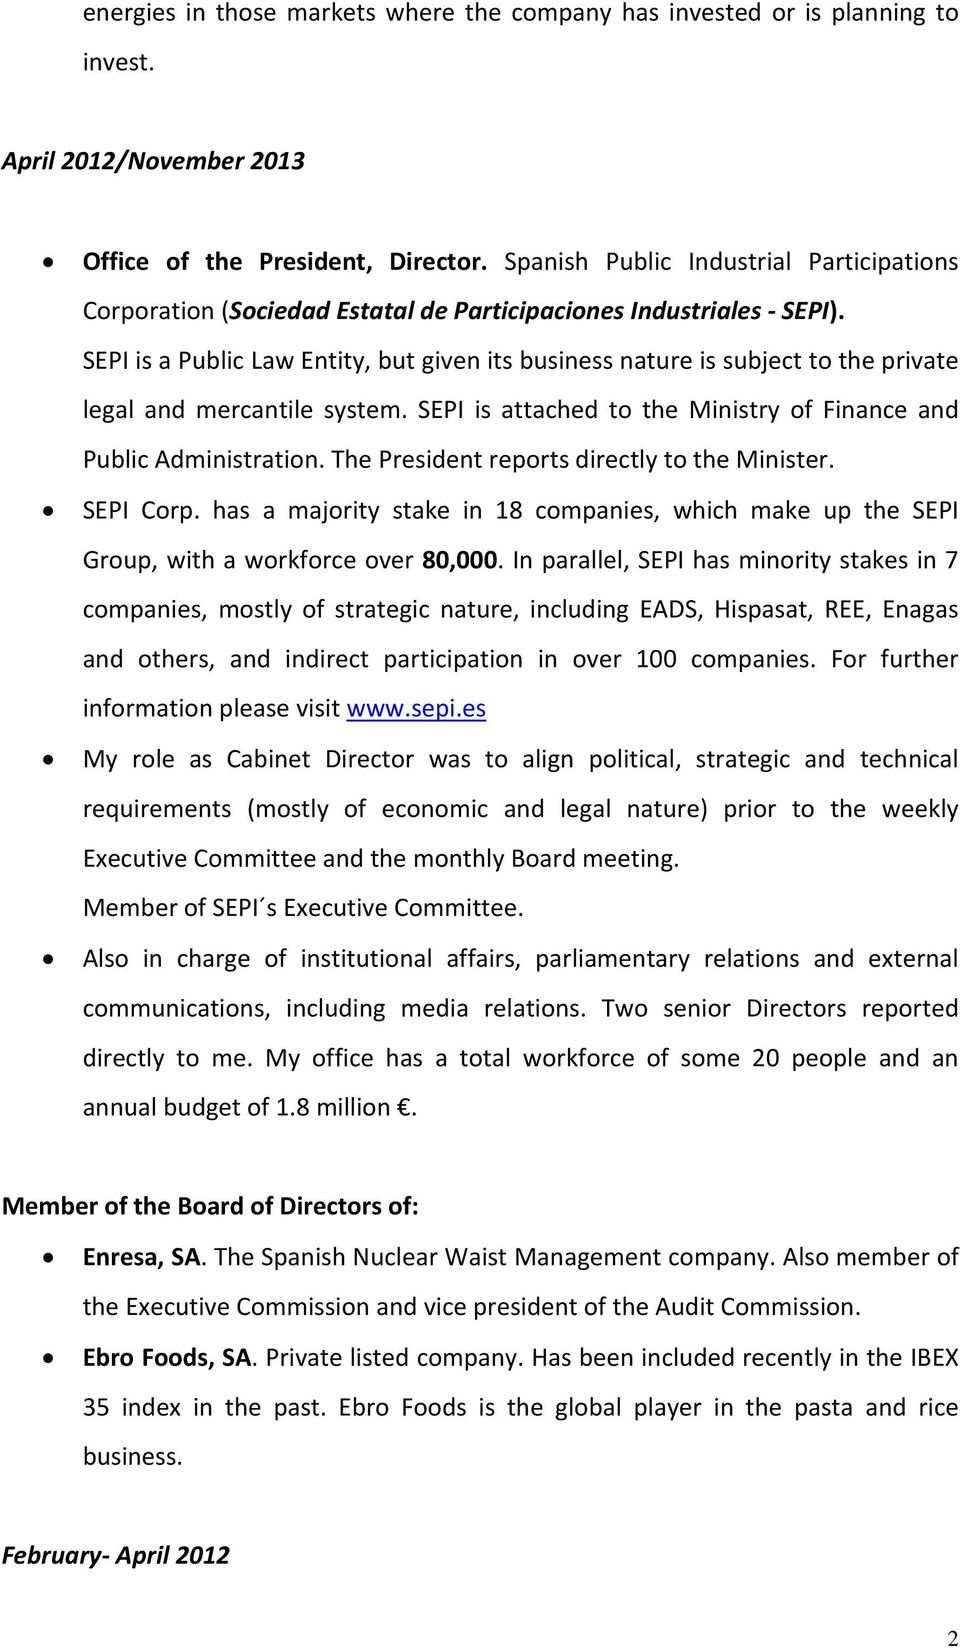 SEPI is a Public Law Entity, but given its business nature is subject to the private legal and mercantile system. SEPI is attached to the Ministry of Finance and Public Administration.